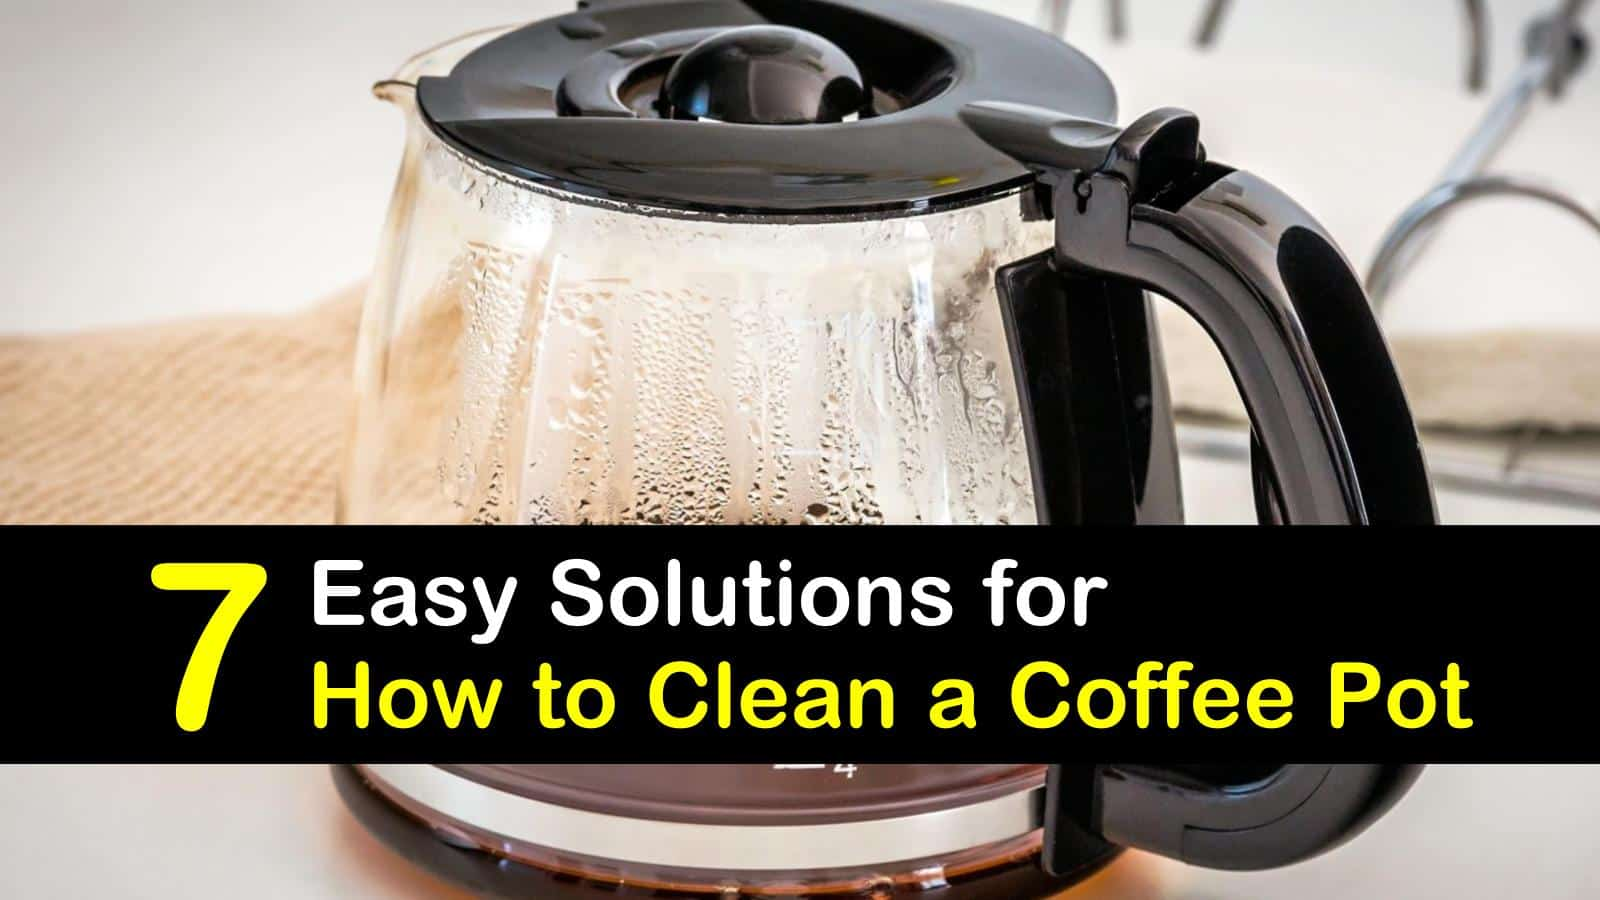 how to clean a coffee pot titleimg1